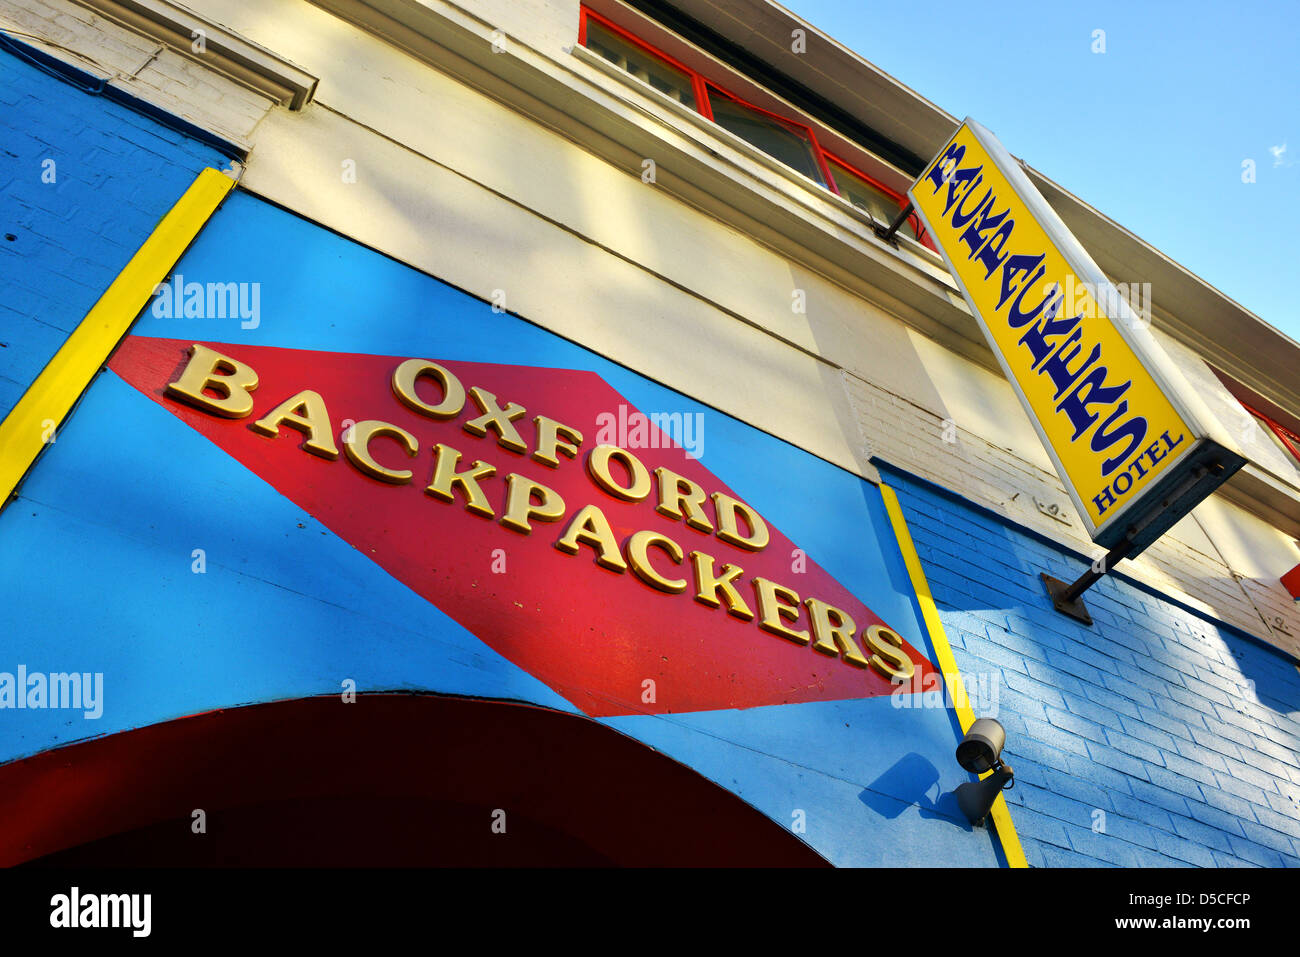 Oxford Backpackers hostel, City of Oxford, Britain, UK - Stock Image